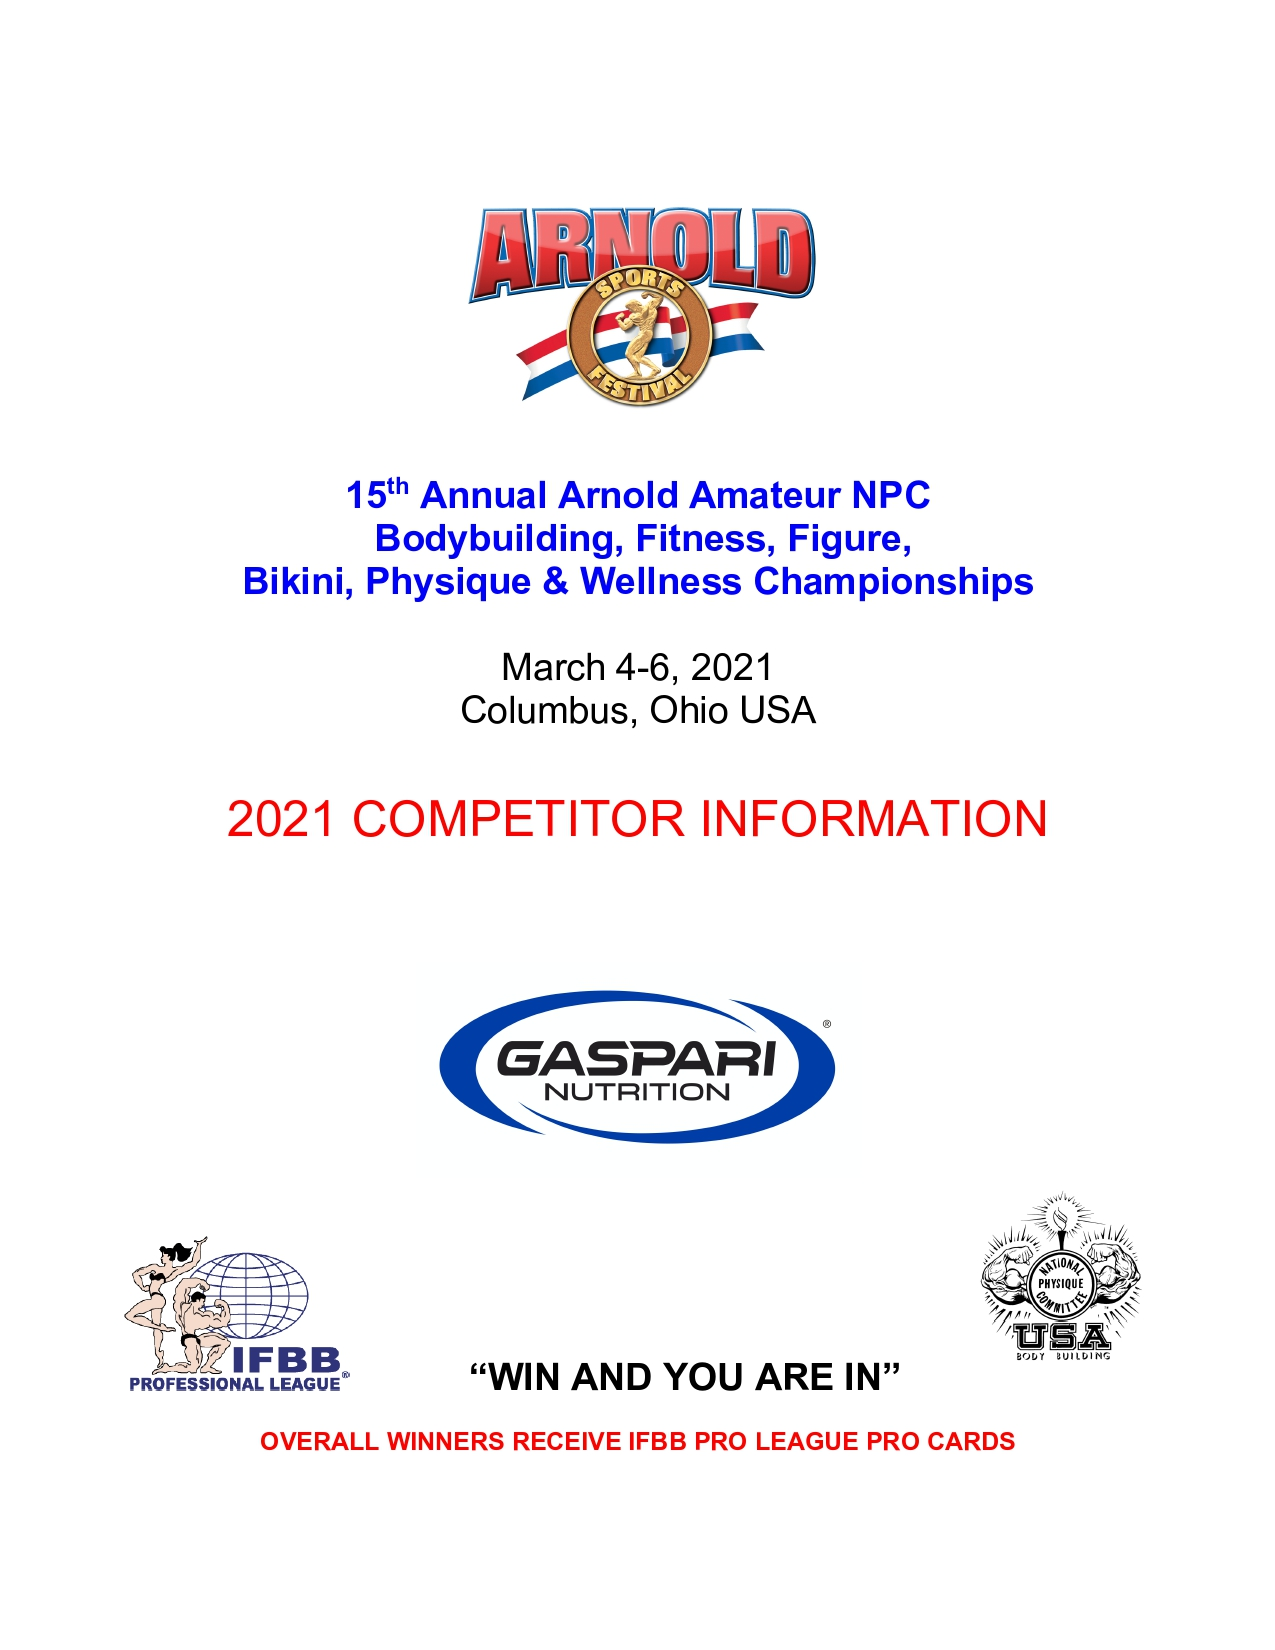 2021-Arnold-Amateur-Competitor-Information-8.3.21_page-0001